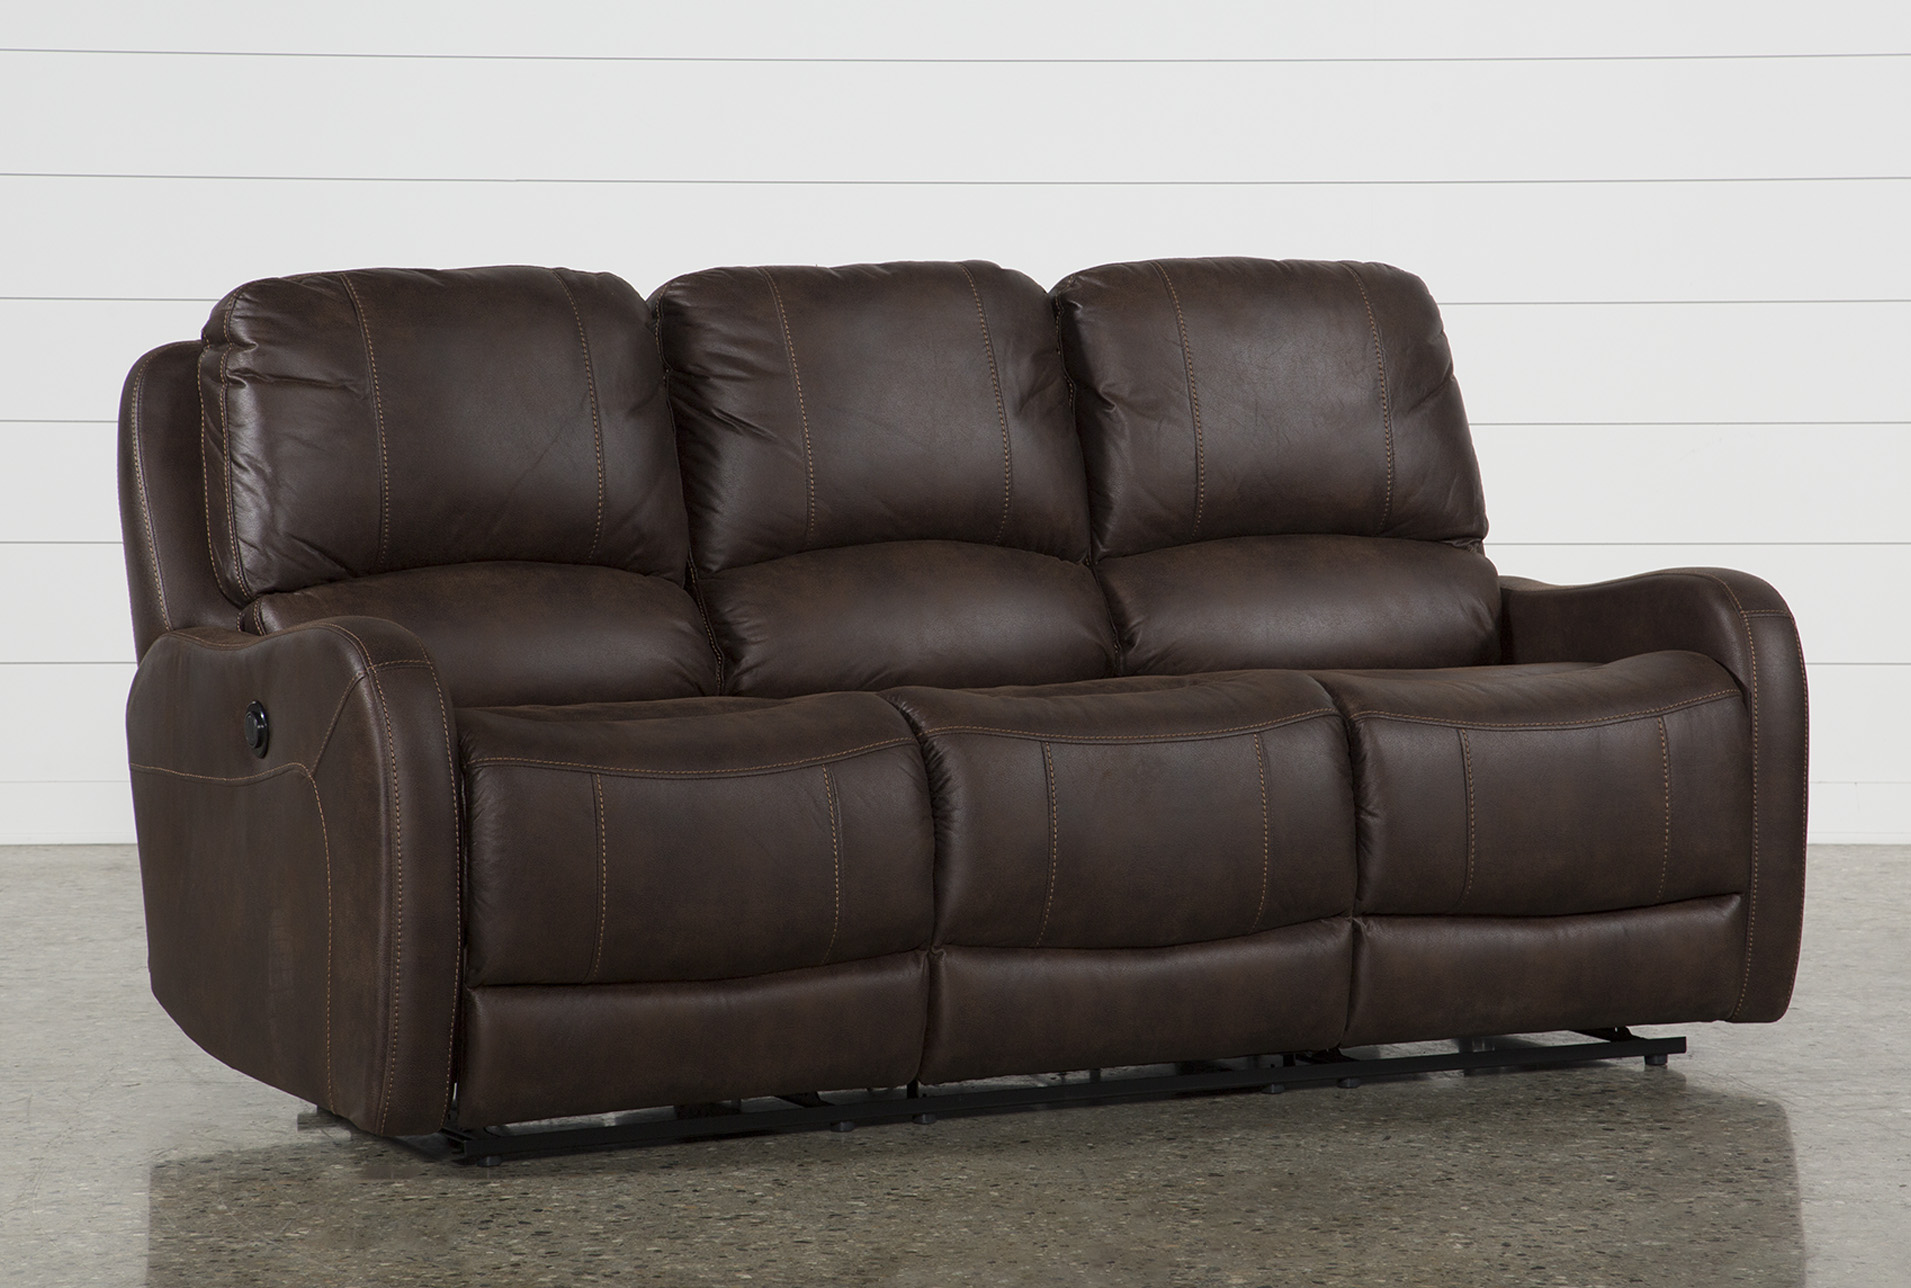 Davor Brown Power Reclining Sofa (Qty: 1) has been successfully added to  your Cart.